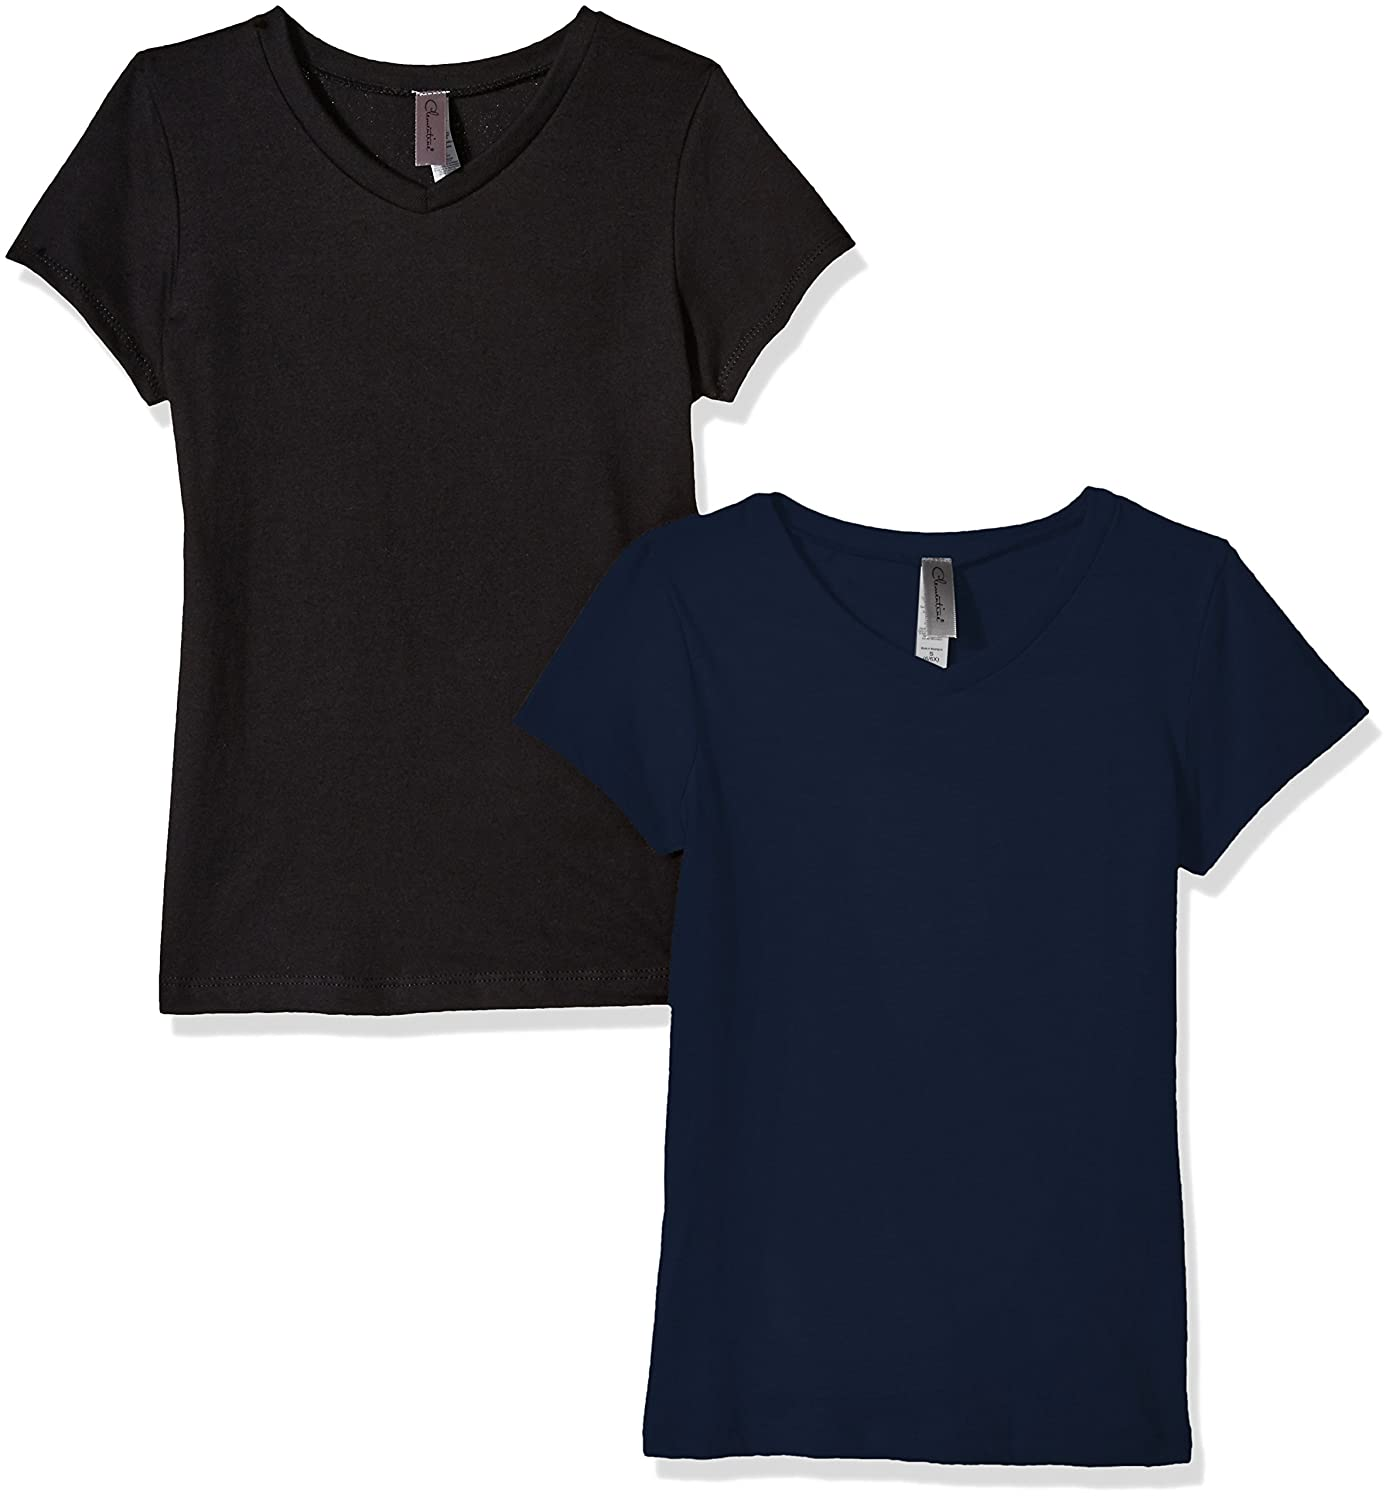 Clementine Apparel Women's 2 Pack Short Sleeve T Shirts Easy Tag V Neck Soft Cotton Blend Undershirt Tees (6640) Clementine Womens Child Code 2-CLM6640